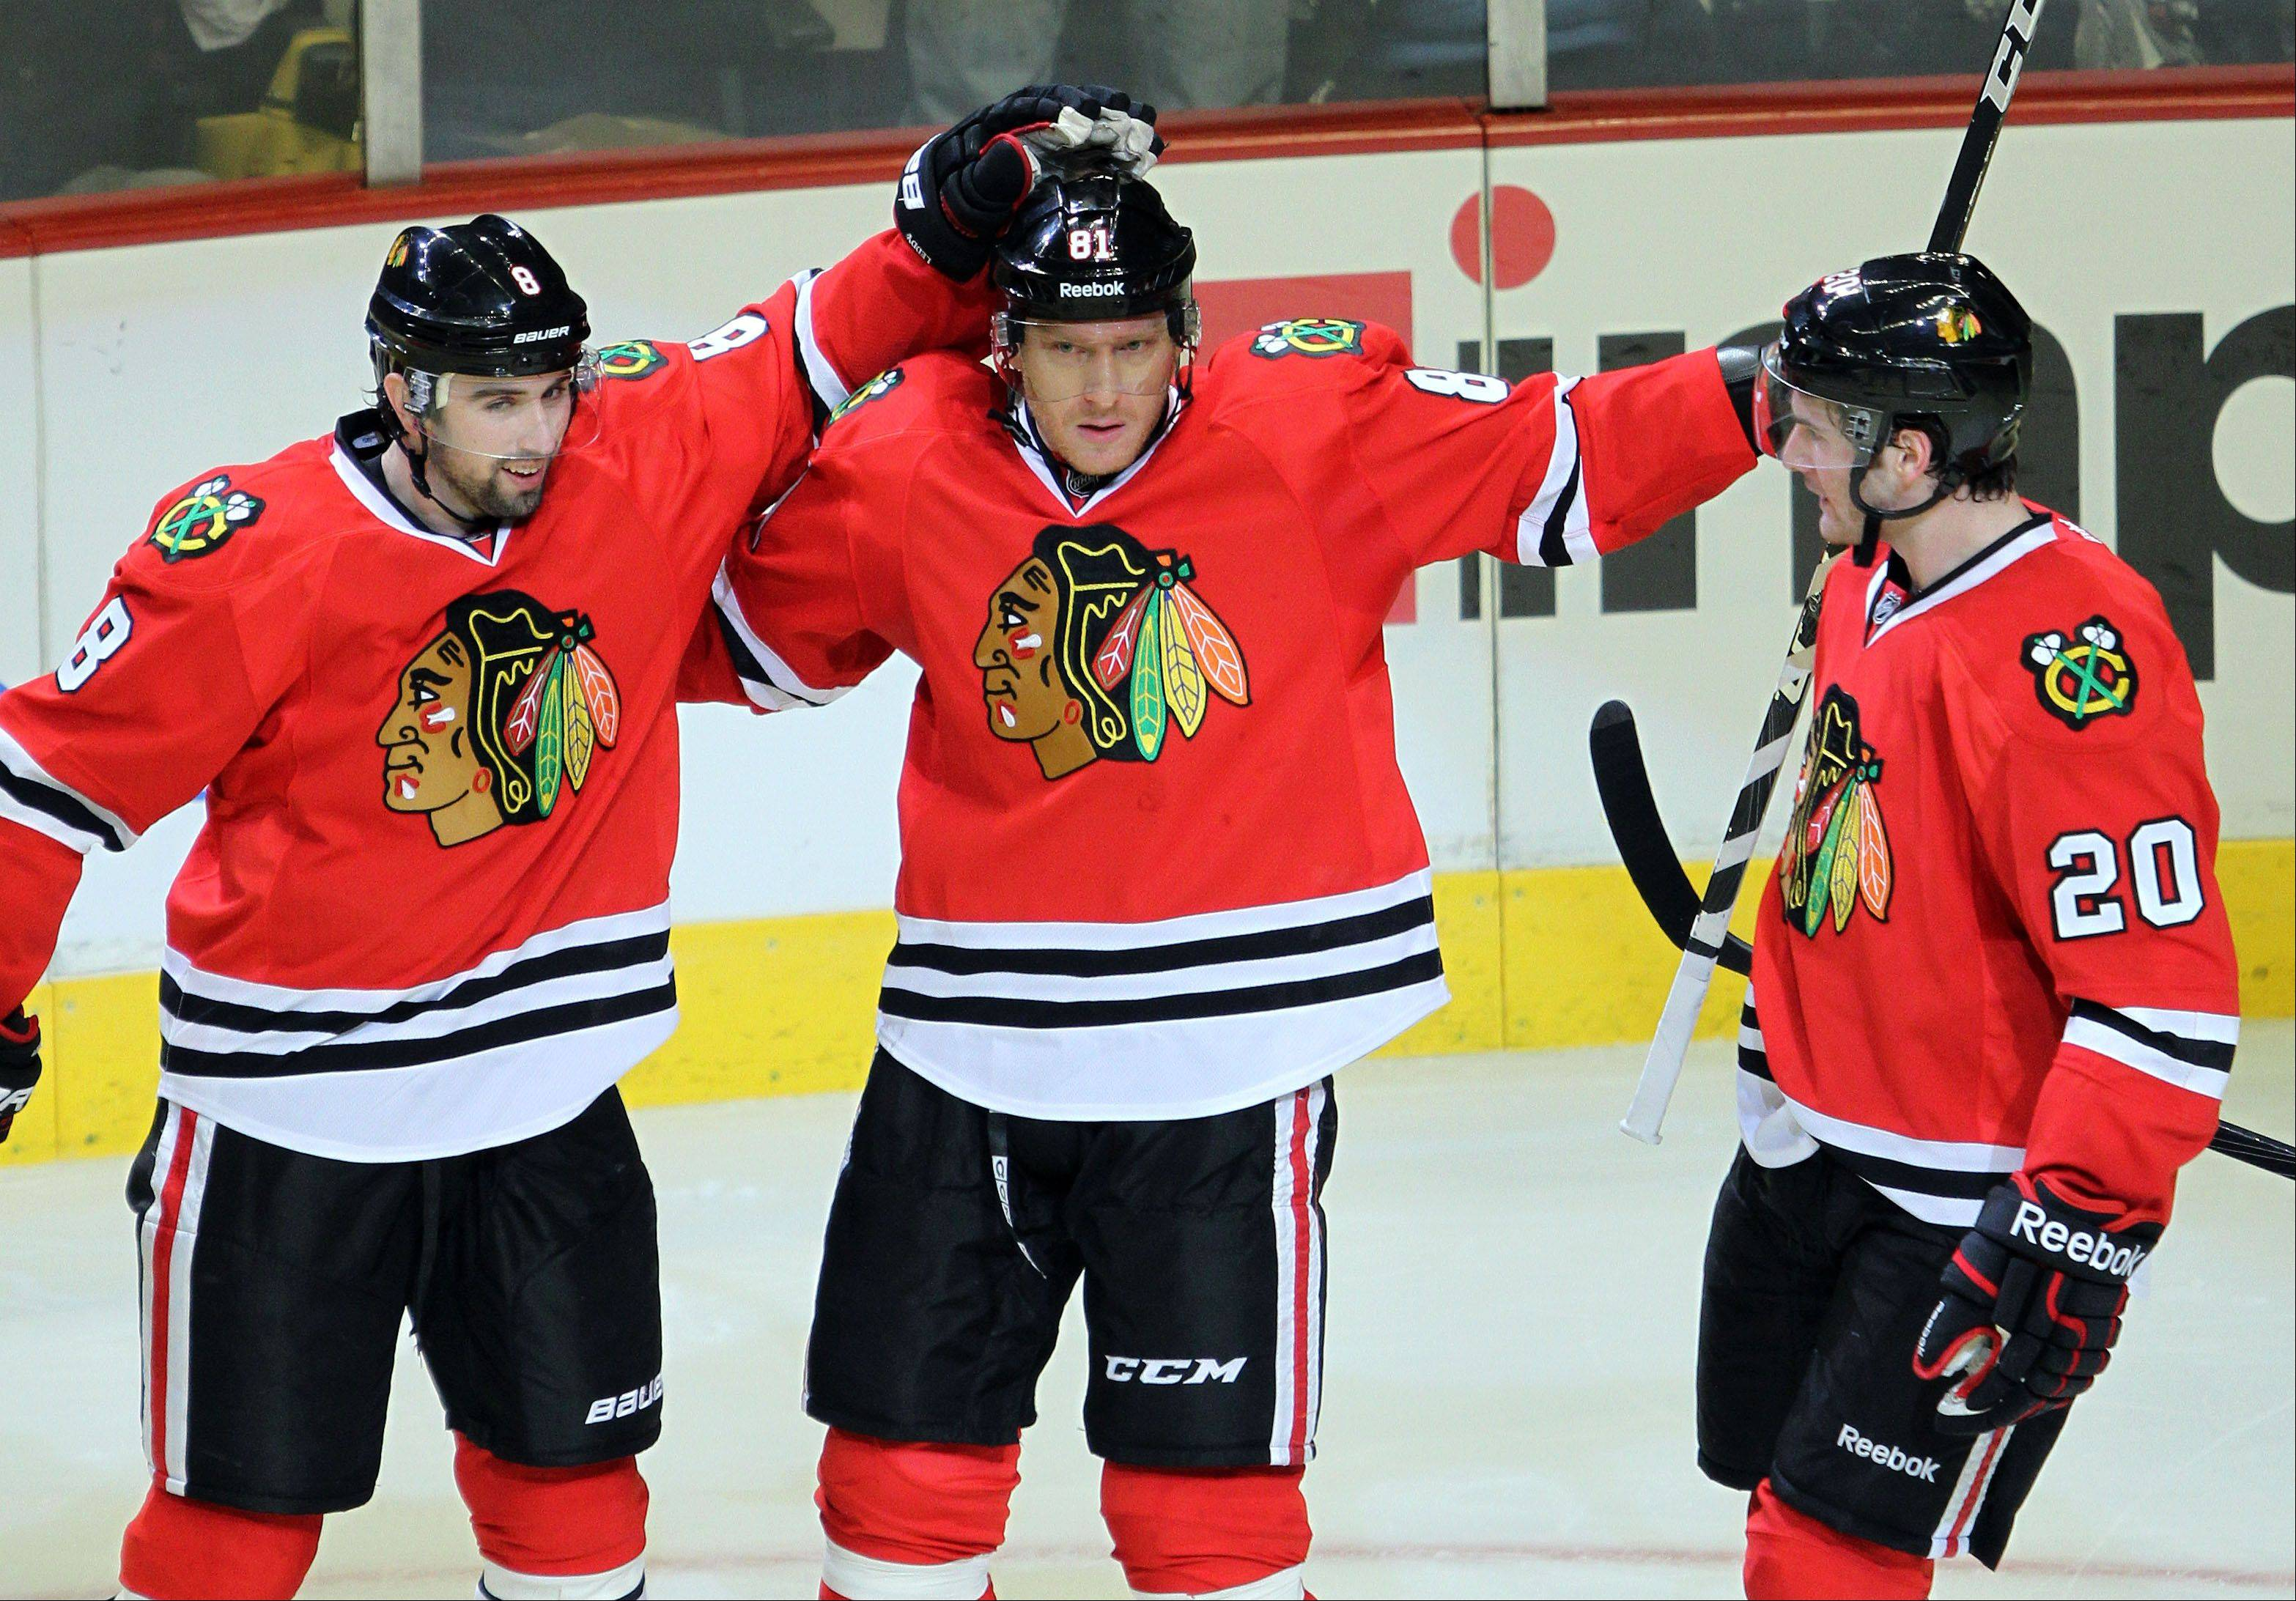 Blackhawks defenseman Nick Leddy and left wing Brandon Saad celebrate with right wing Marian Hossa after his 2nd period goal during their game Sunday night at the United Center in Chicago.